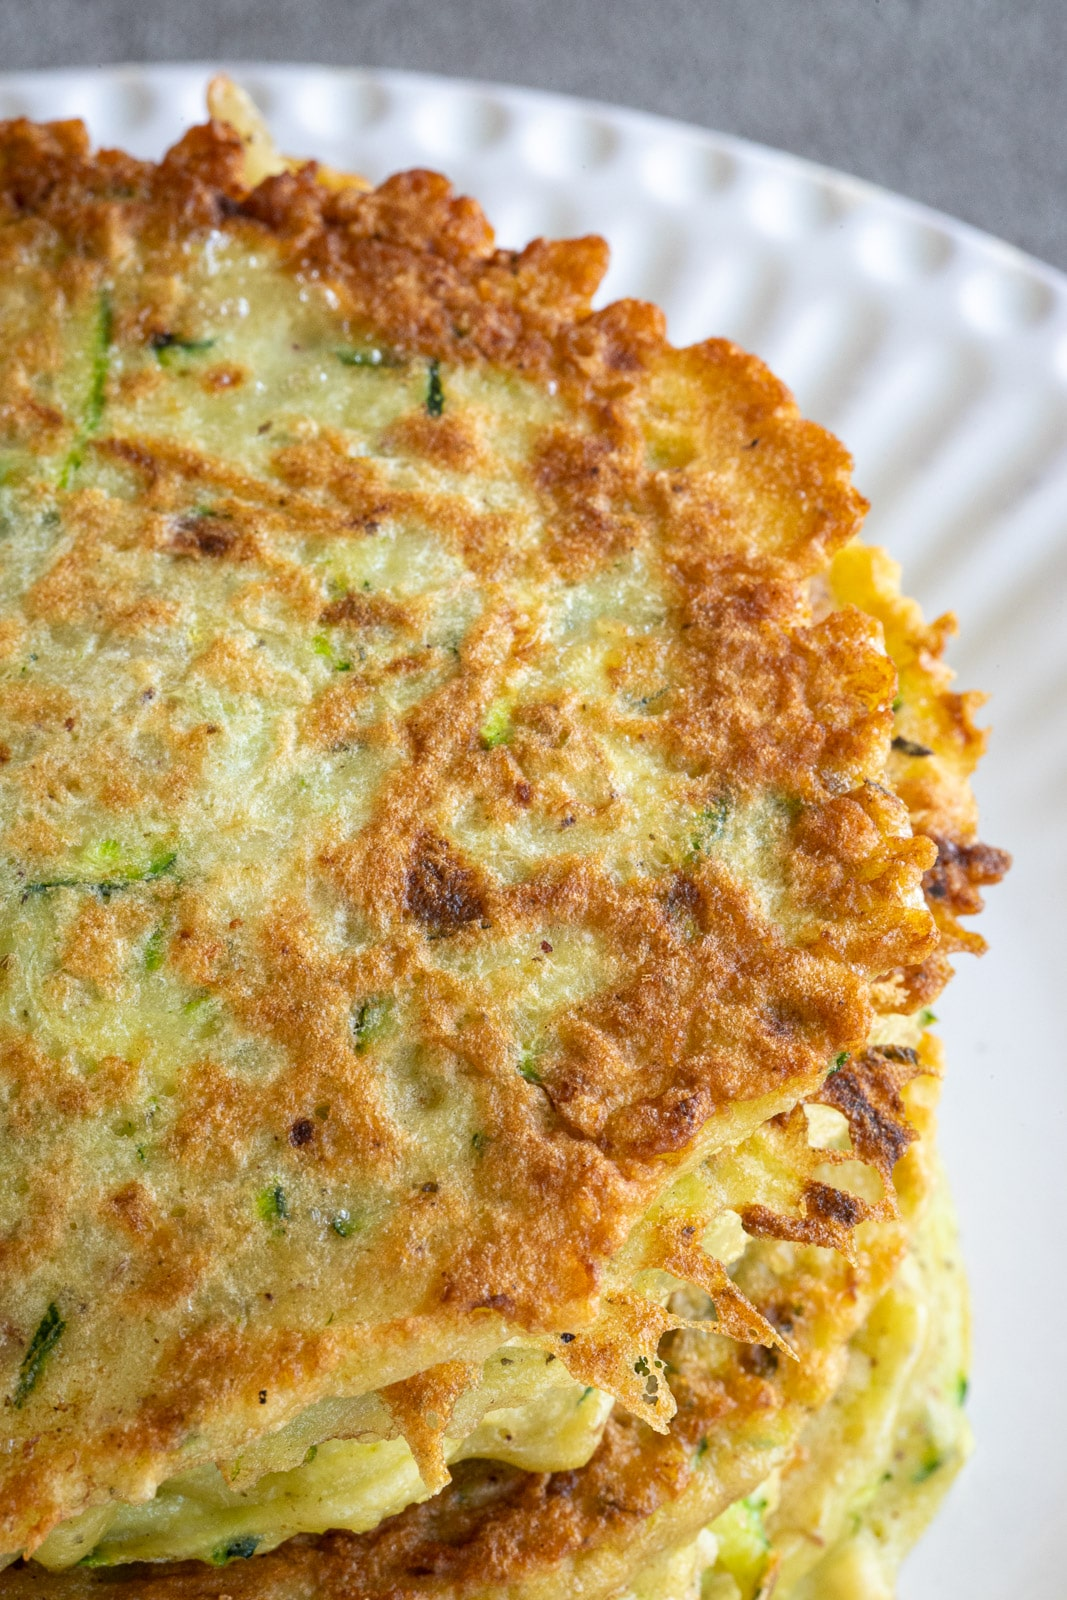 Stack of veggie fritters on a plate.